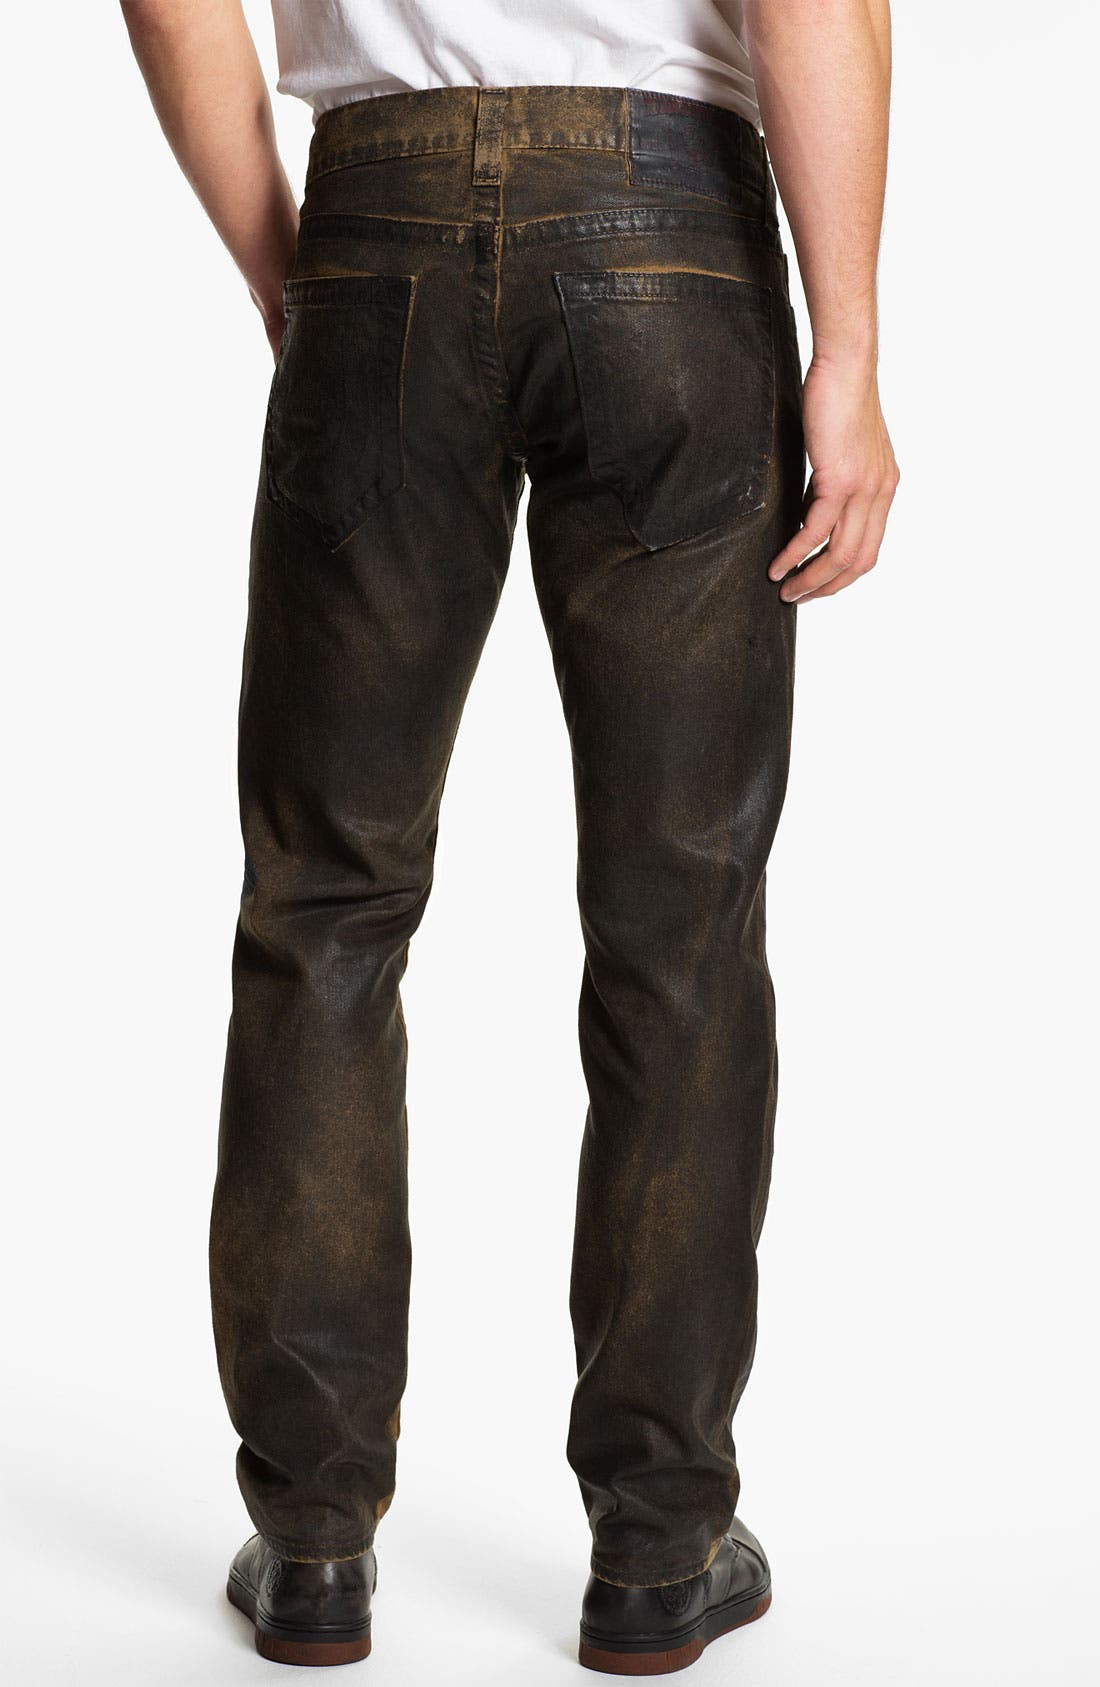 Main Image - True Religion Brand Jeans 'Geno' Tapered Straight Leg Jeans (Crackle Coated Black Vintage)